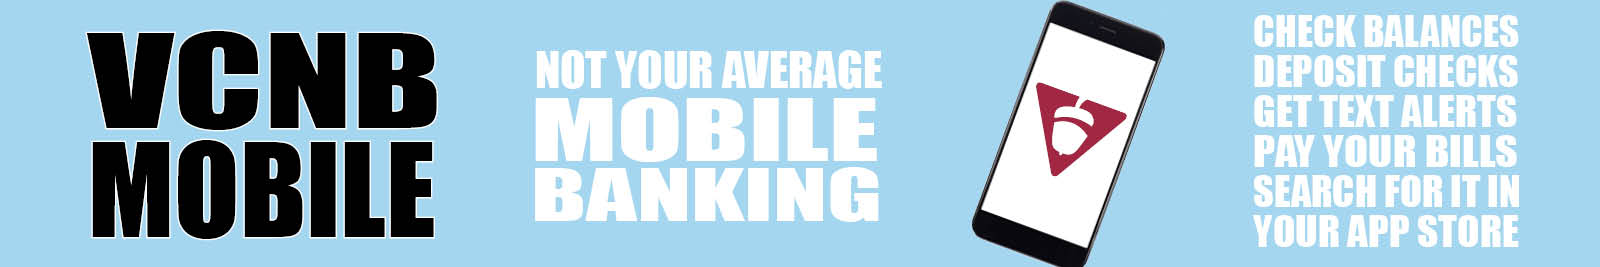 Not Your Average Mobile Banking